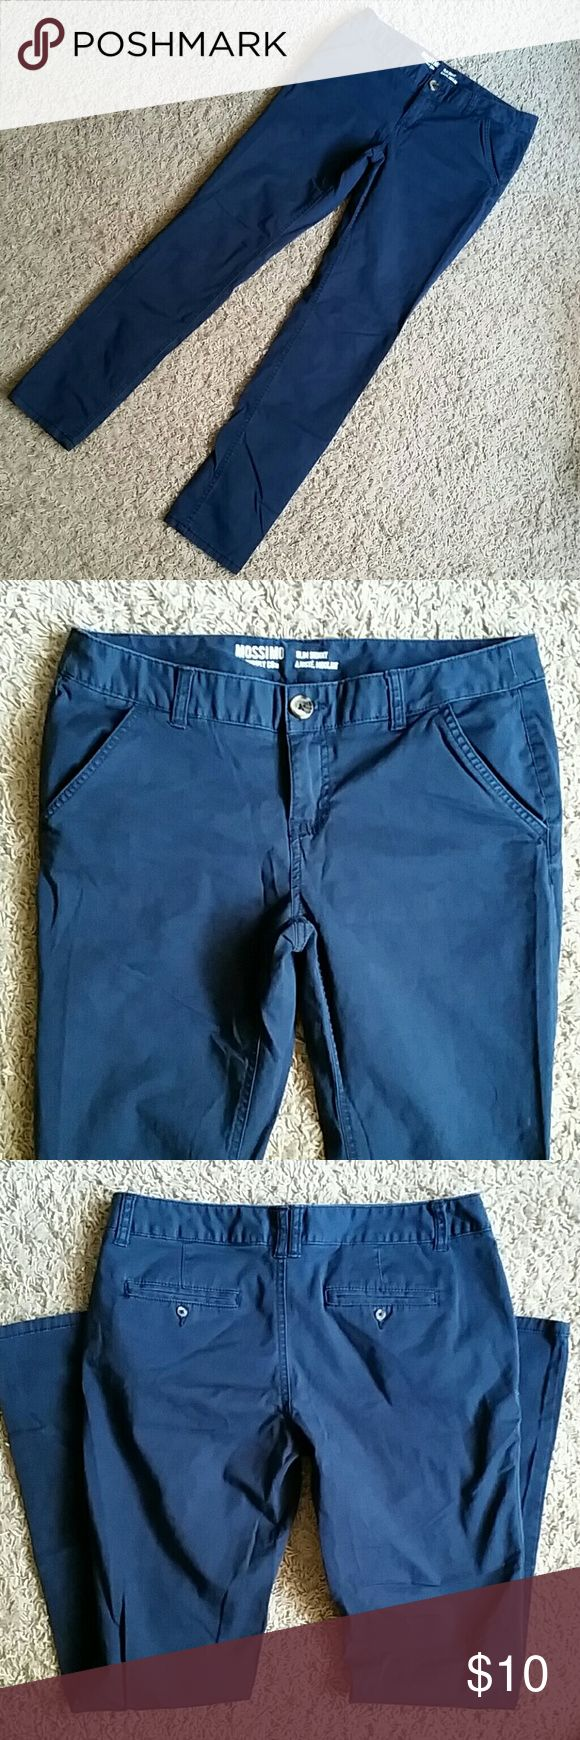 🌻 Blue Khaki Skinny Pants Blue khaki skinny pants by Mossimo. Washed once. Size 9, slim fit.  Choose FIVE $5 or $4 items for only $15.00!  ✅Add your five $5/$4 items to a bundle ✅Then make me an offer for $15.00! ⚠$5 or $4 items only. Items are marked with a 🌻 💕Thank you for shopping my closet!  Women's clothing, baby / toddler clothing, books, etc! Mossimo Supply Co Pants Skinny